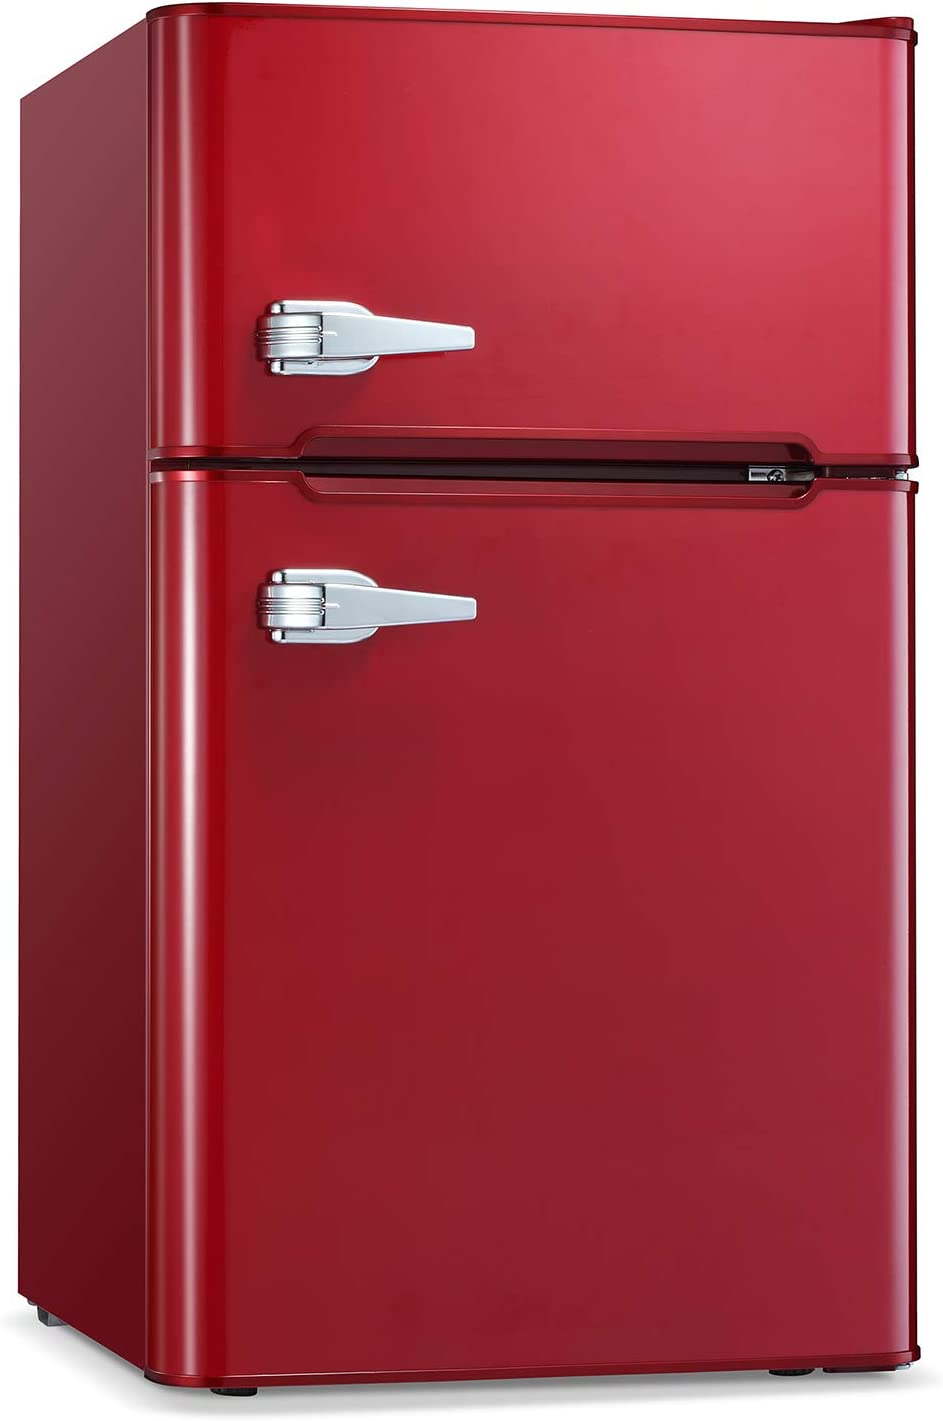 Antarctic Star Compact Mini Refrigerator Separate Freezer, Small Fridge Double 2-Door Adjustable Removable Retro Stainless Steel Shelves Garage Camper Basement/Dorm/Office 3.2 cu ft. Red